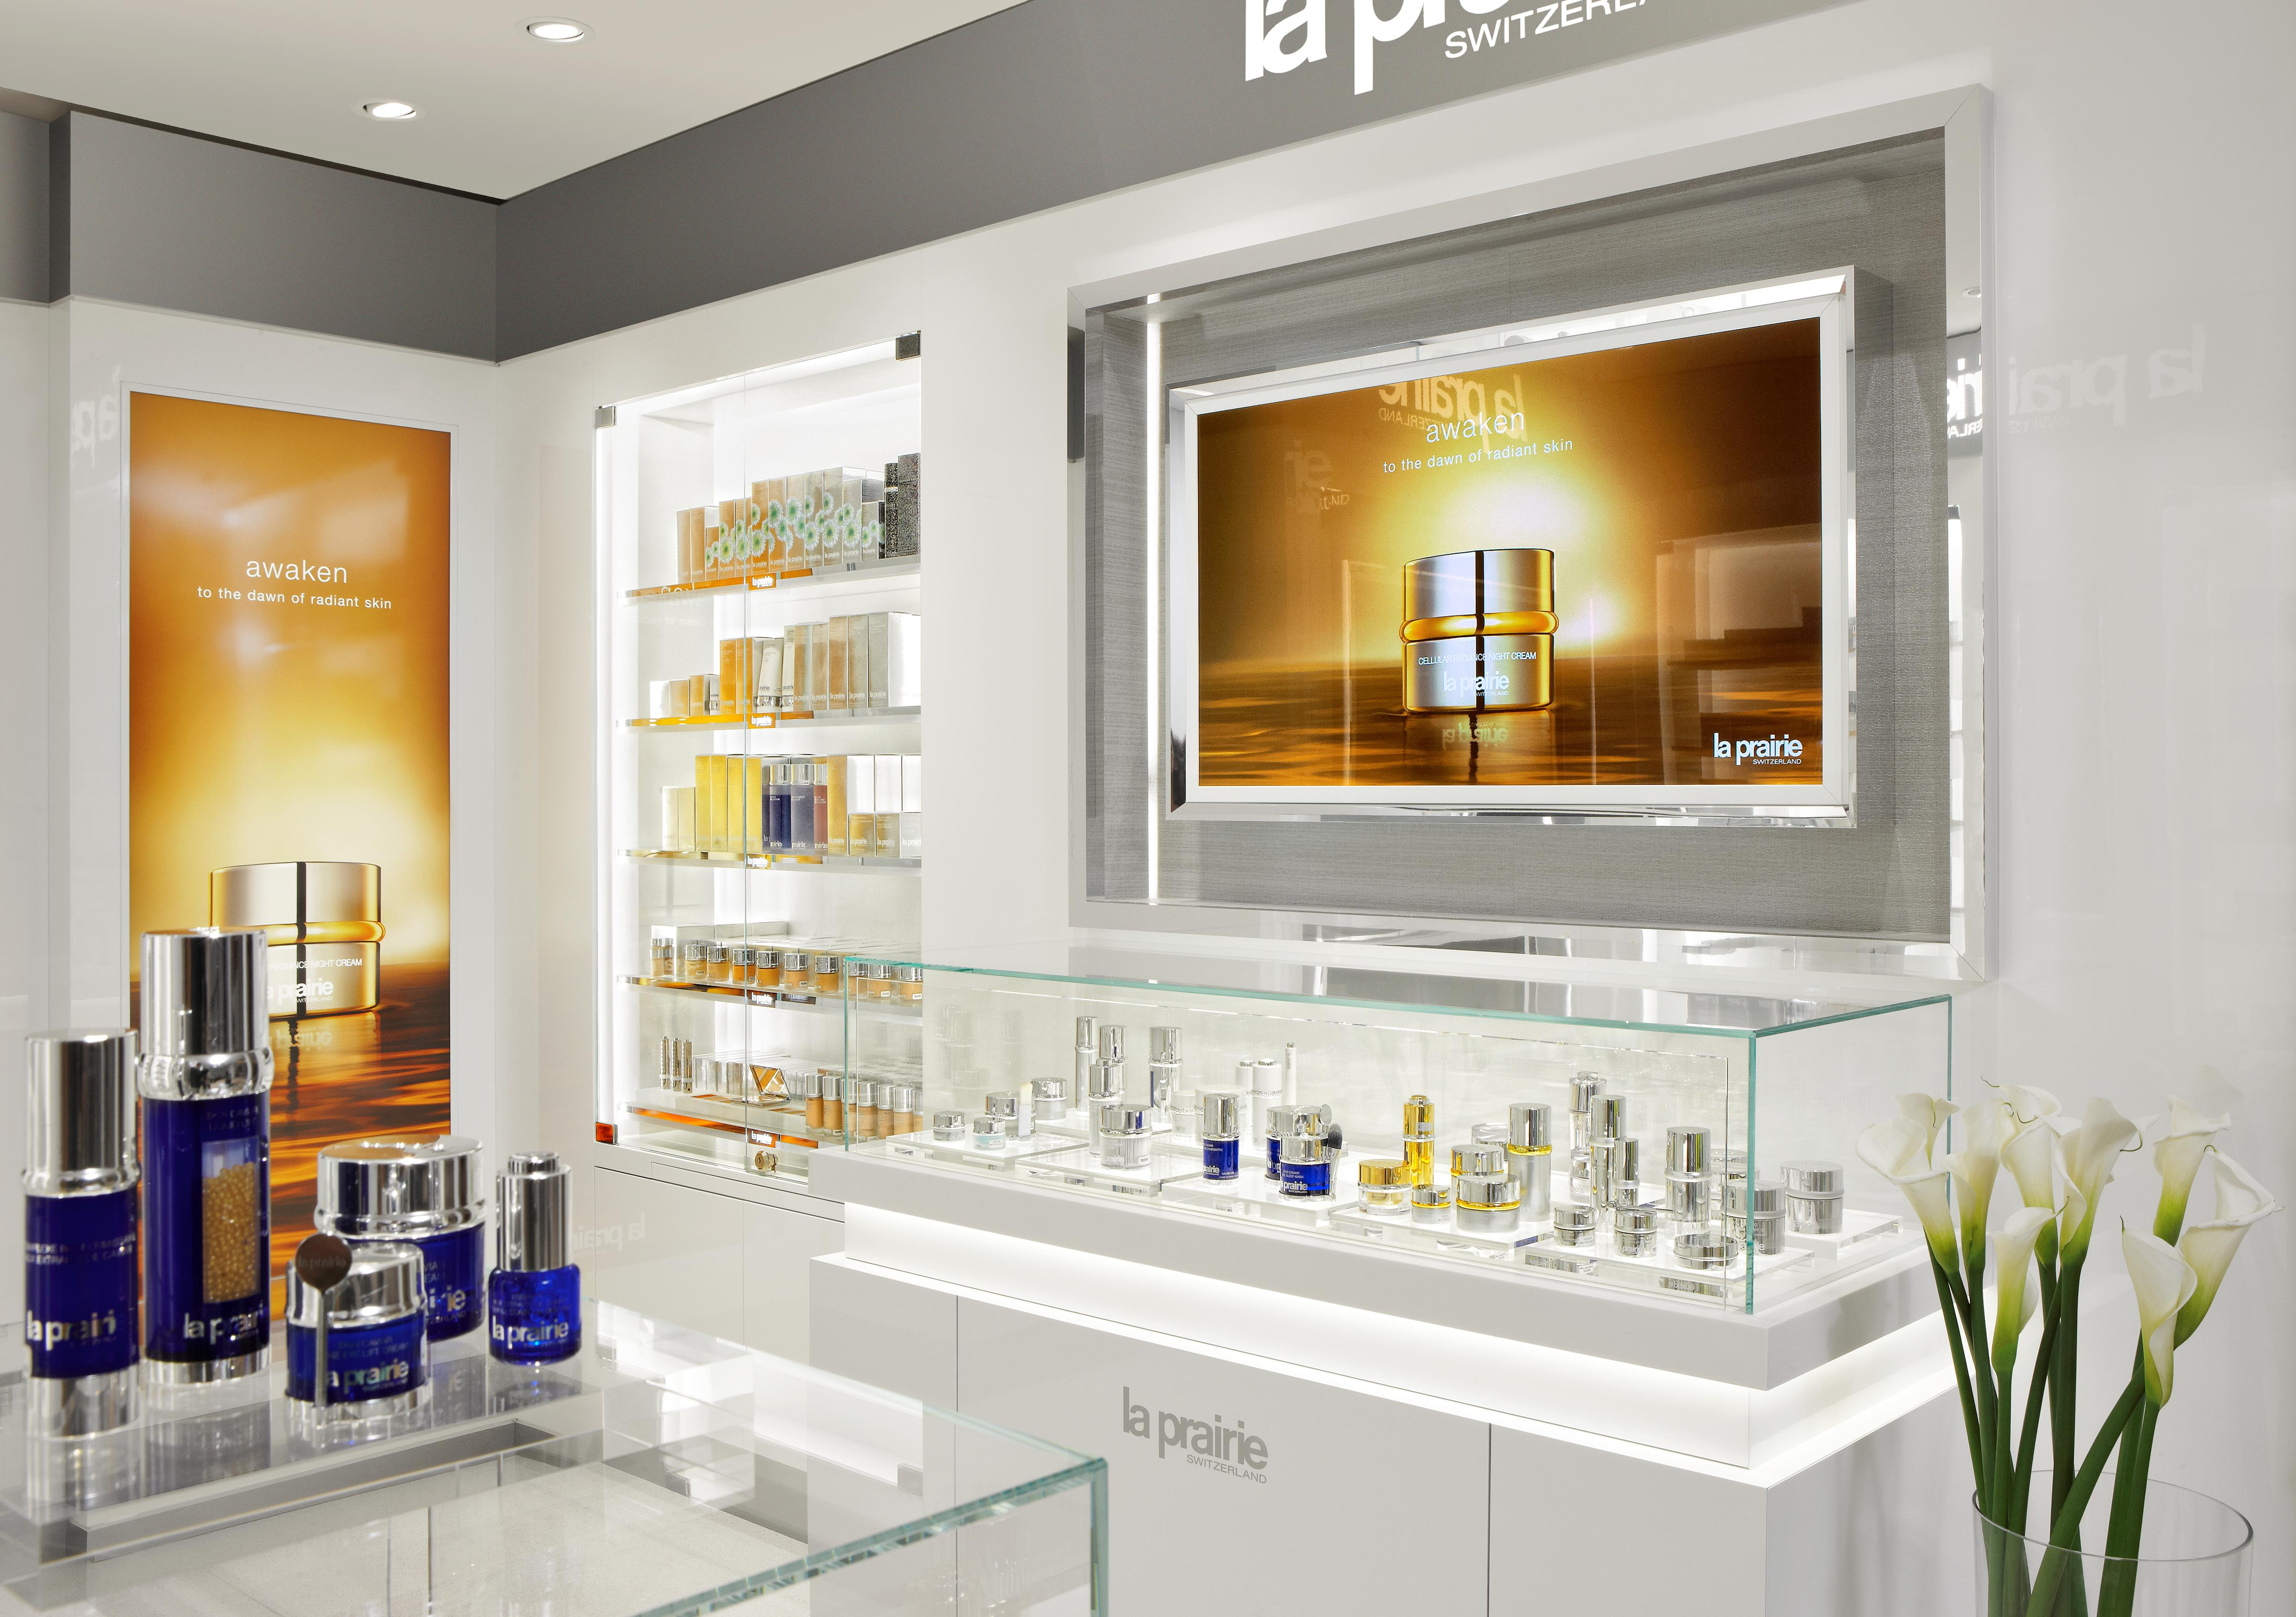 FIRST LA PRAIRIE HOTEL-BOUTIQUE OPENING